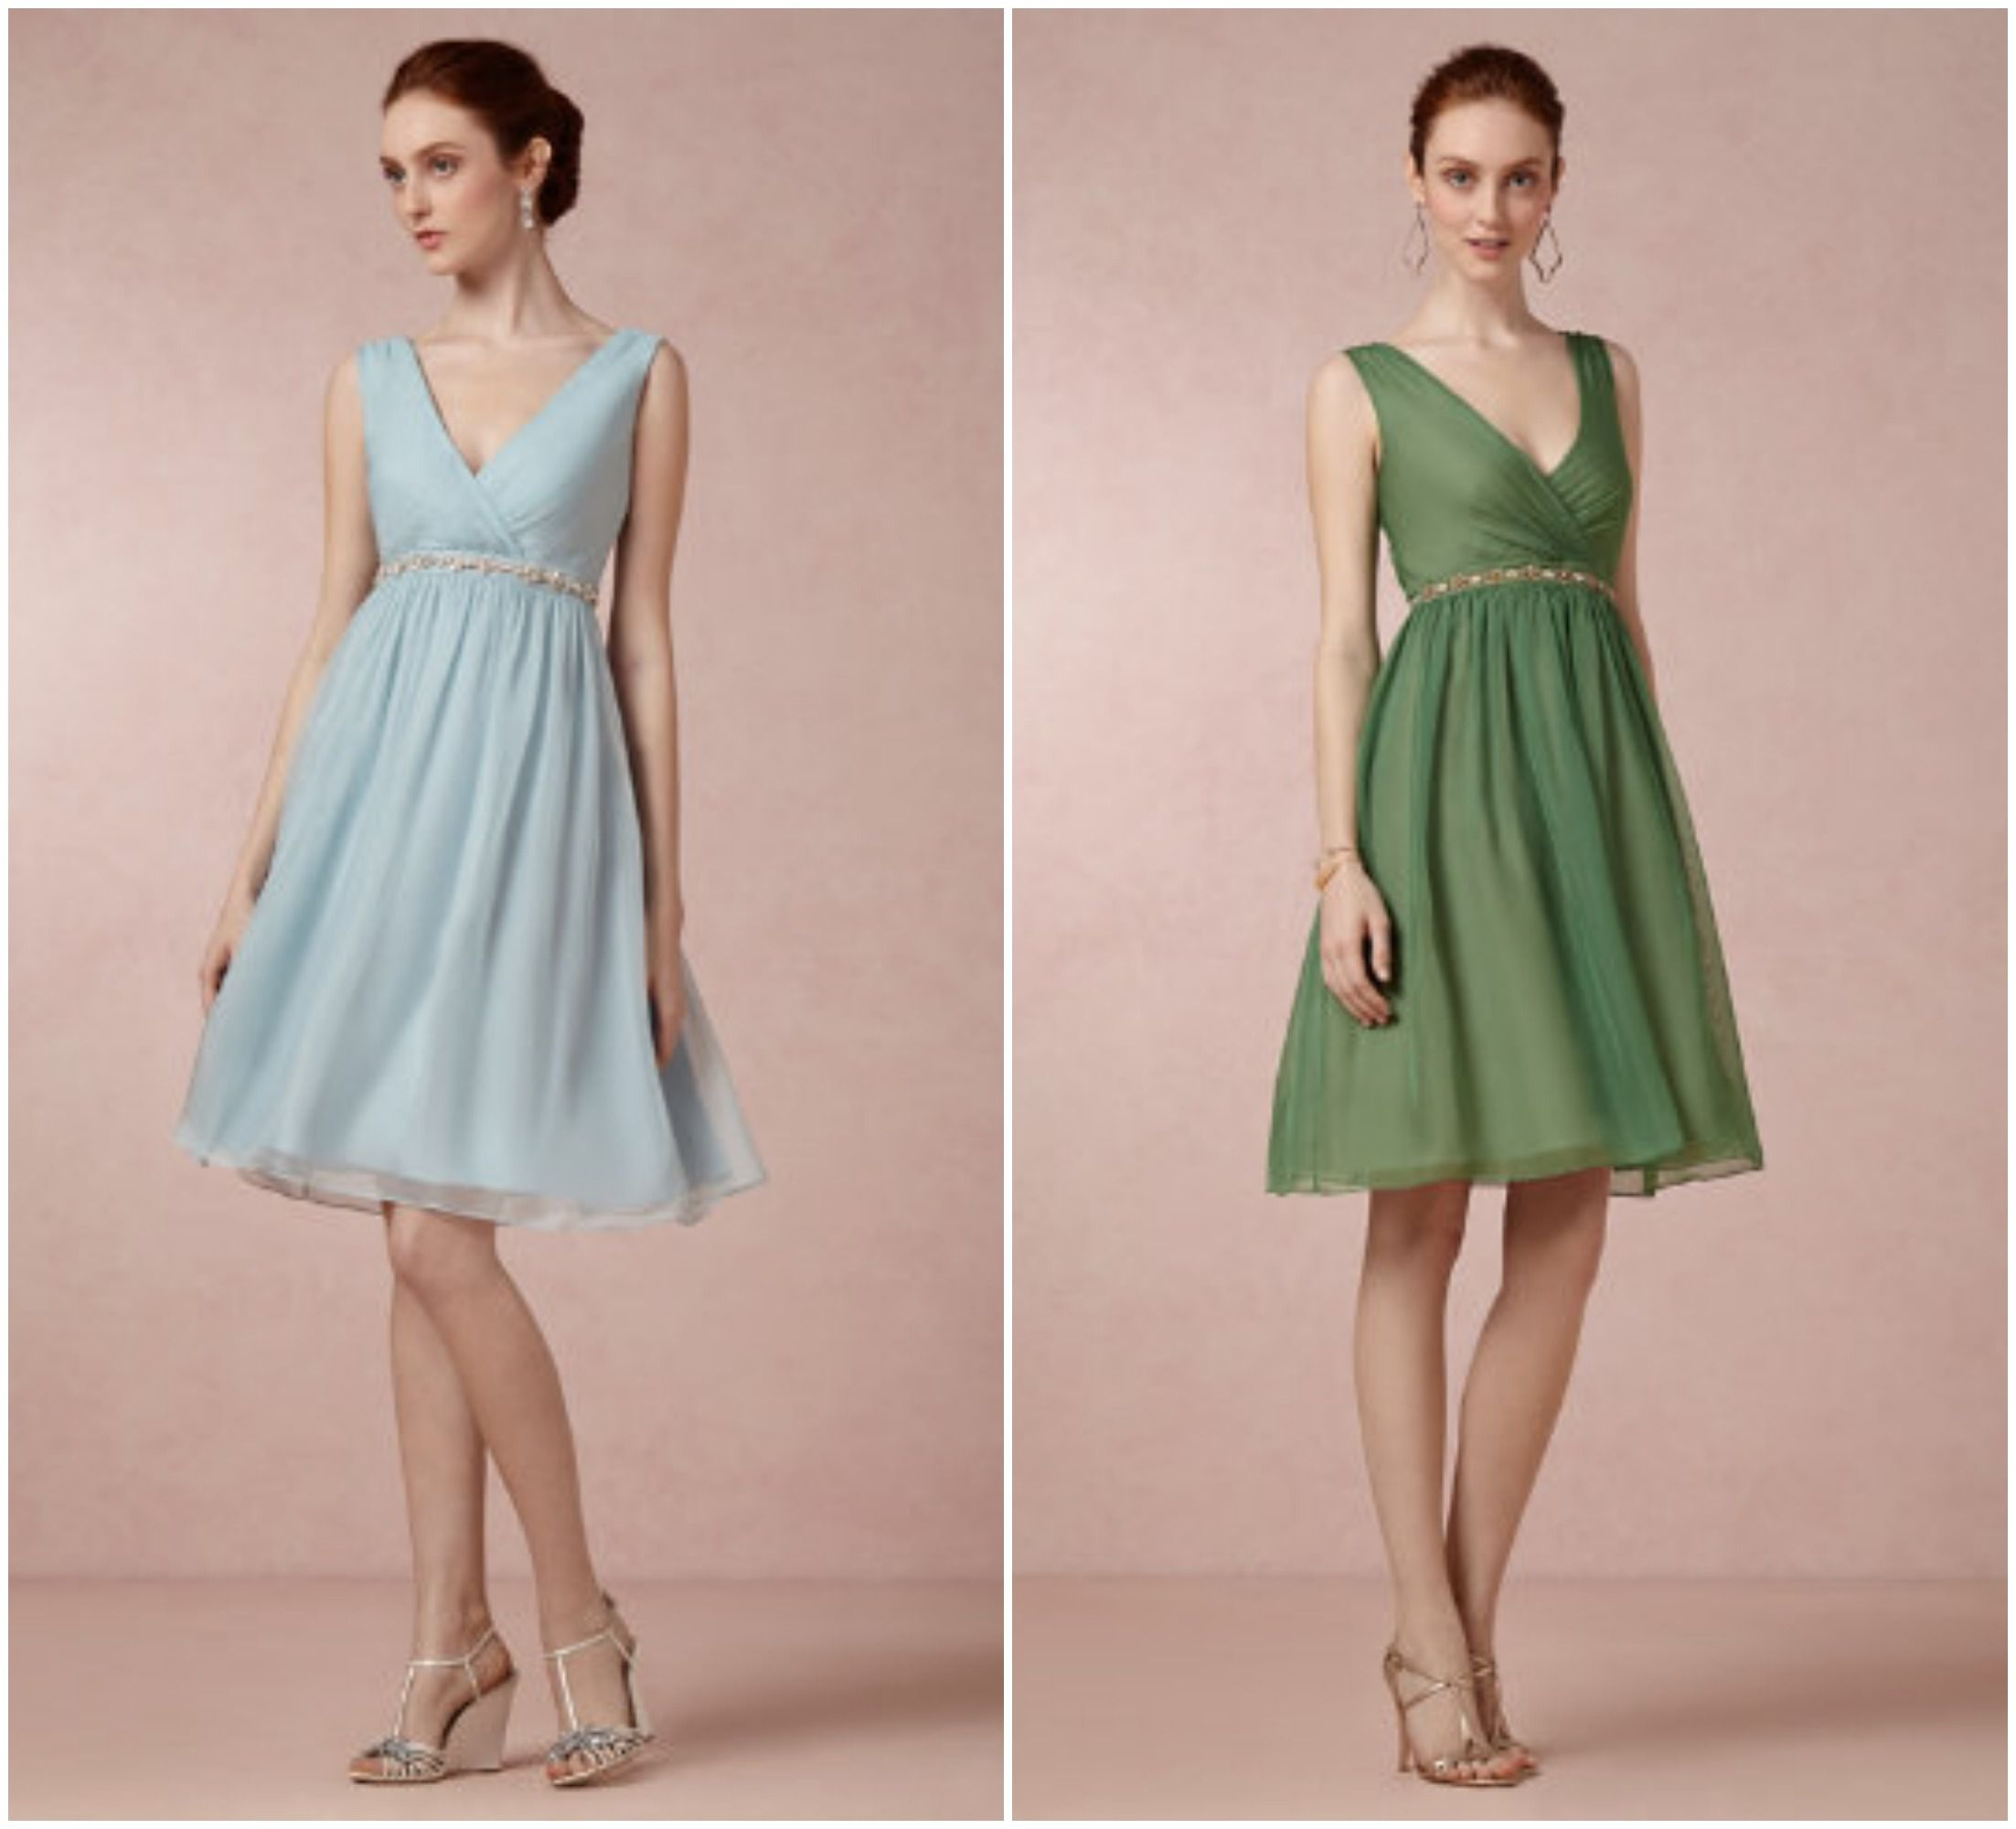 Garden Wedding Bridesmaid Dresses - Rustic Wedding Chic